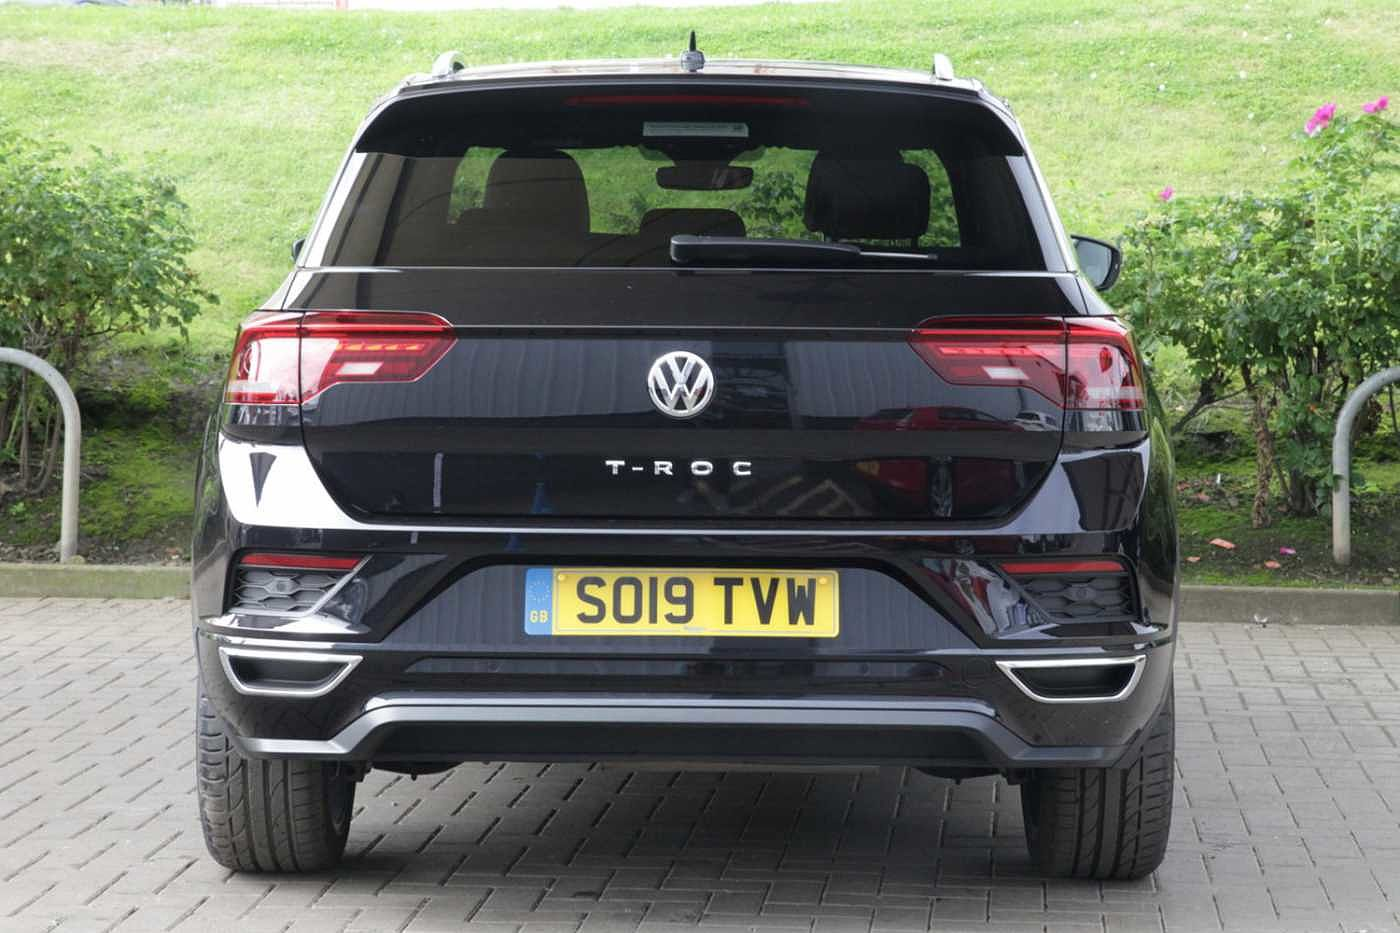 Volkswagen T-ROC for sale